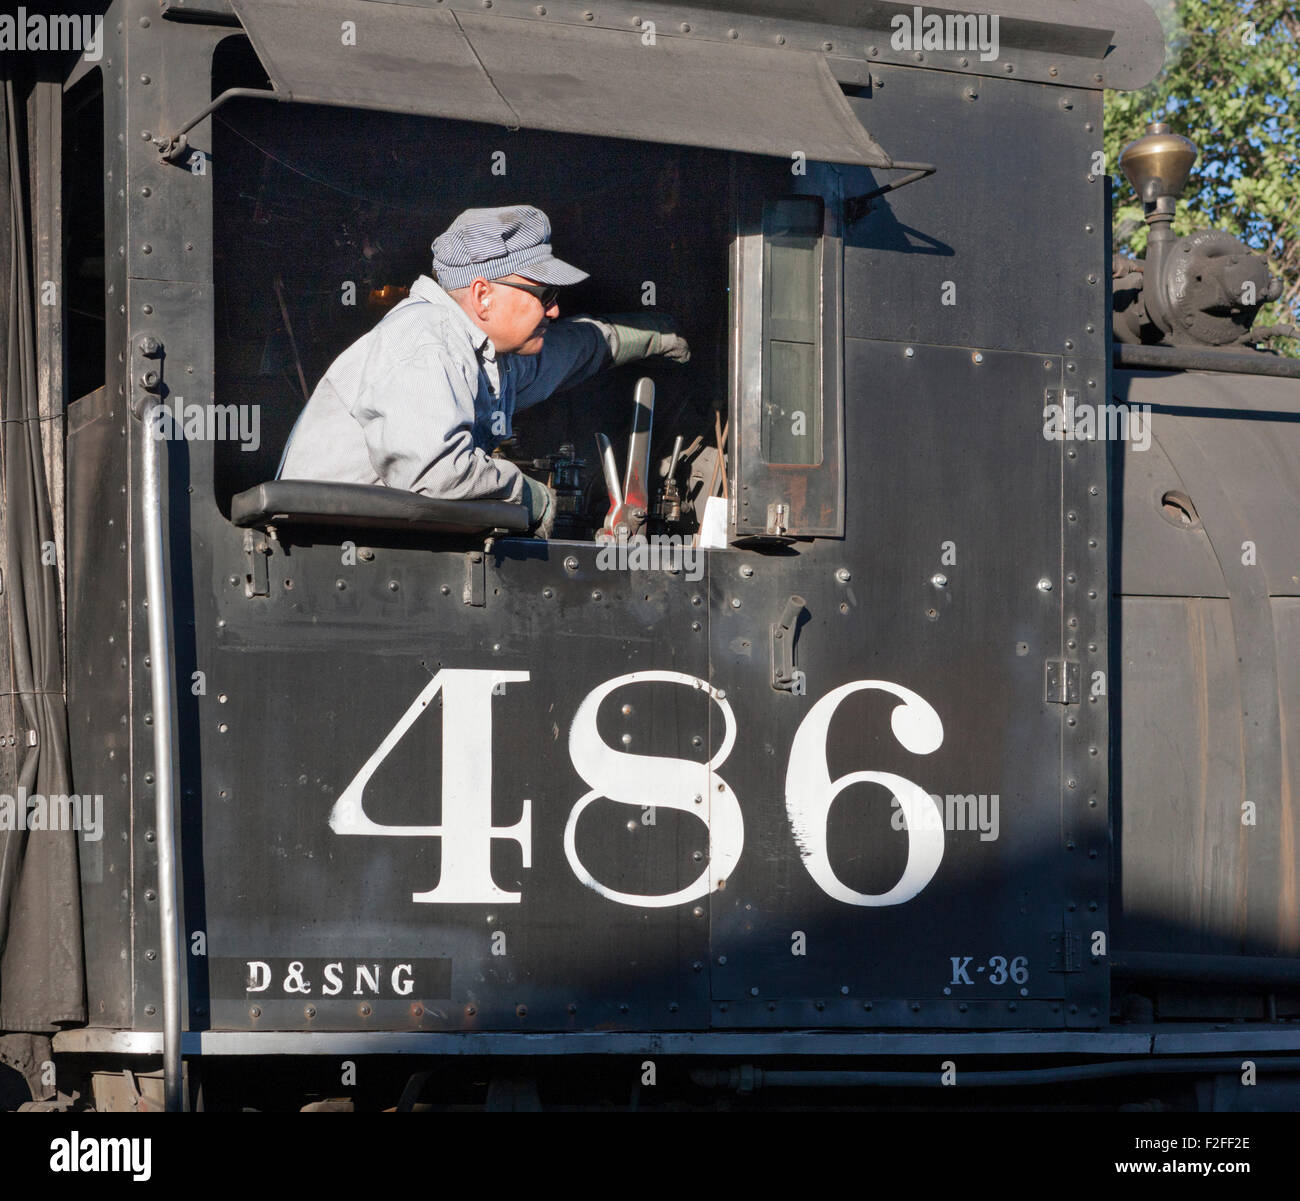 Engineer at the controls of steam locomotive 486 of the Durango & Silverton Narrow Gauge Railroad, Durango, - Stock Image